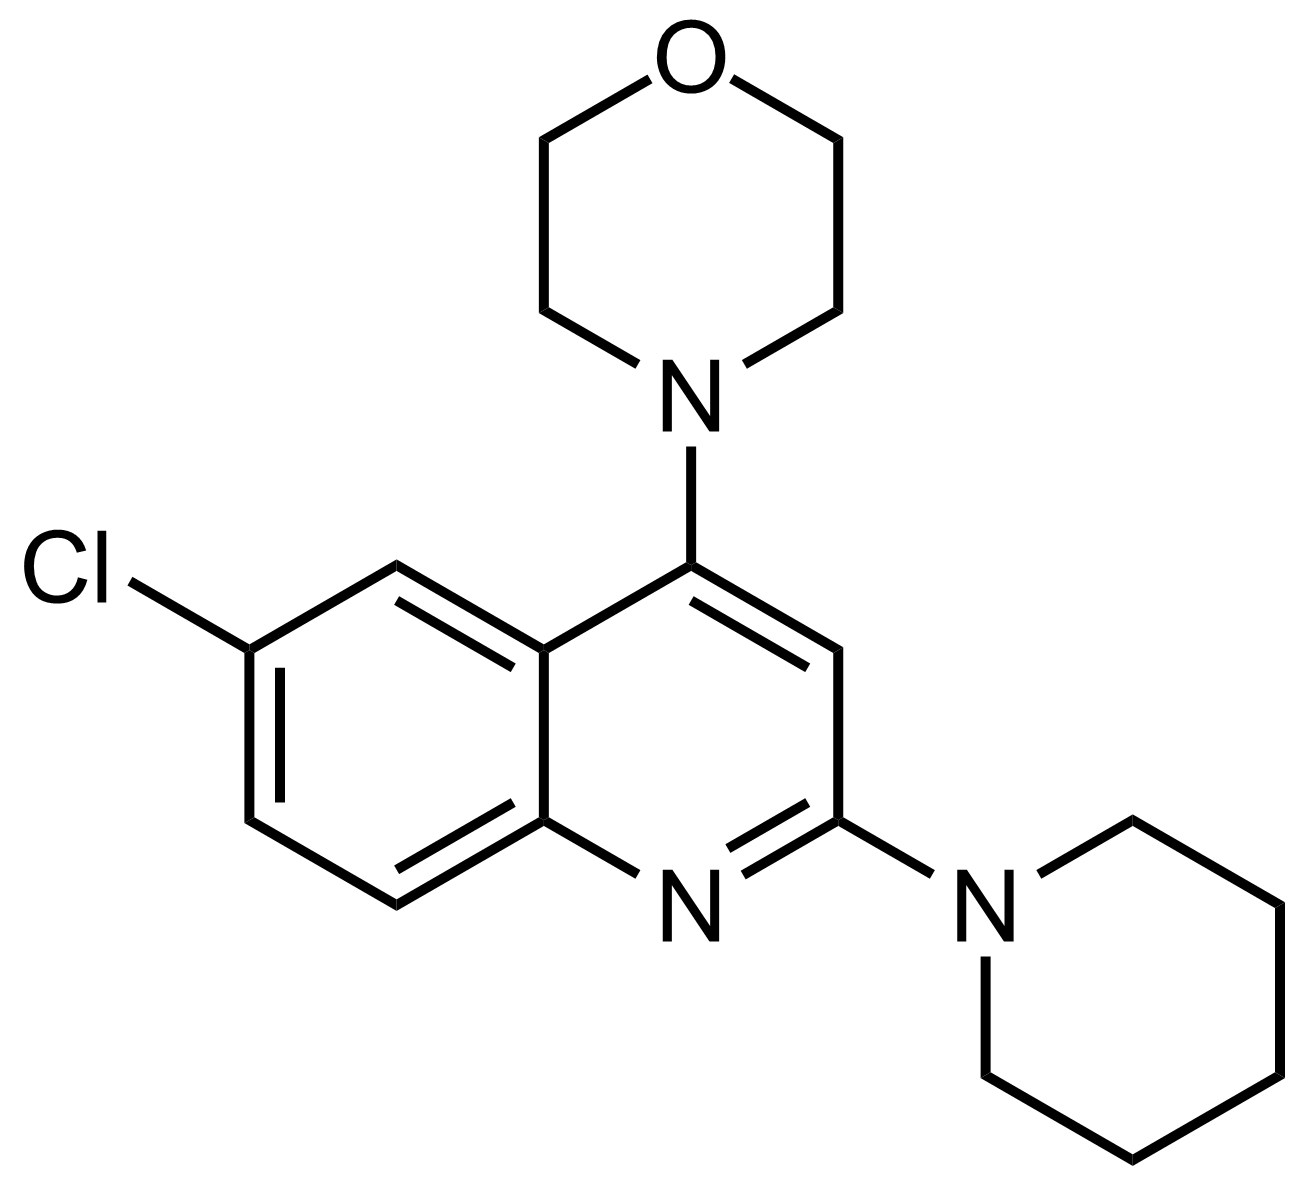 Structure of 4-(6-Chloro-2-(piperidin-1-yl)quinolin-4-yl)morpholine